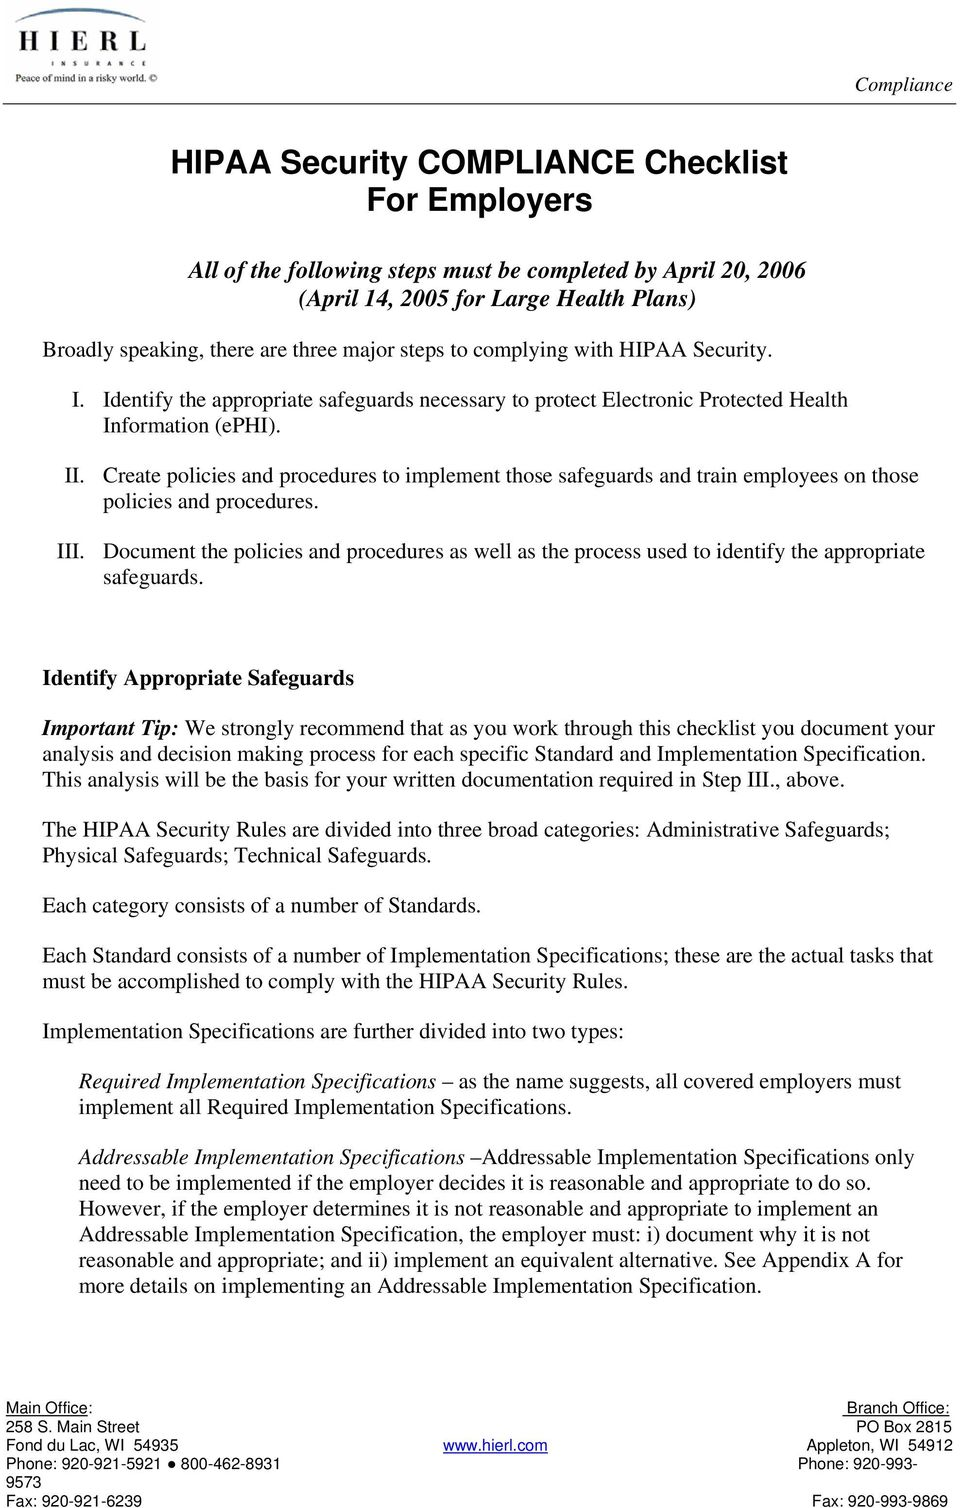 HIPAA Security COMPLIANCE Checklist For Employers - PDF